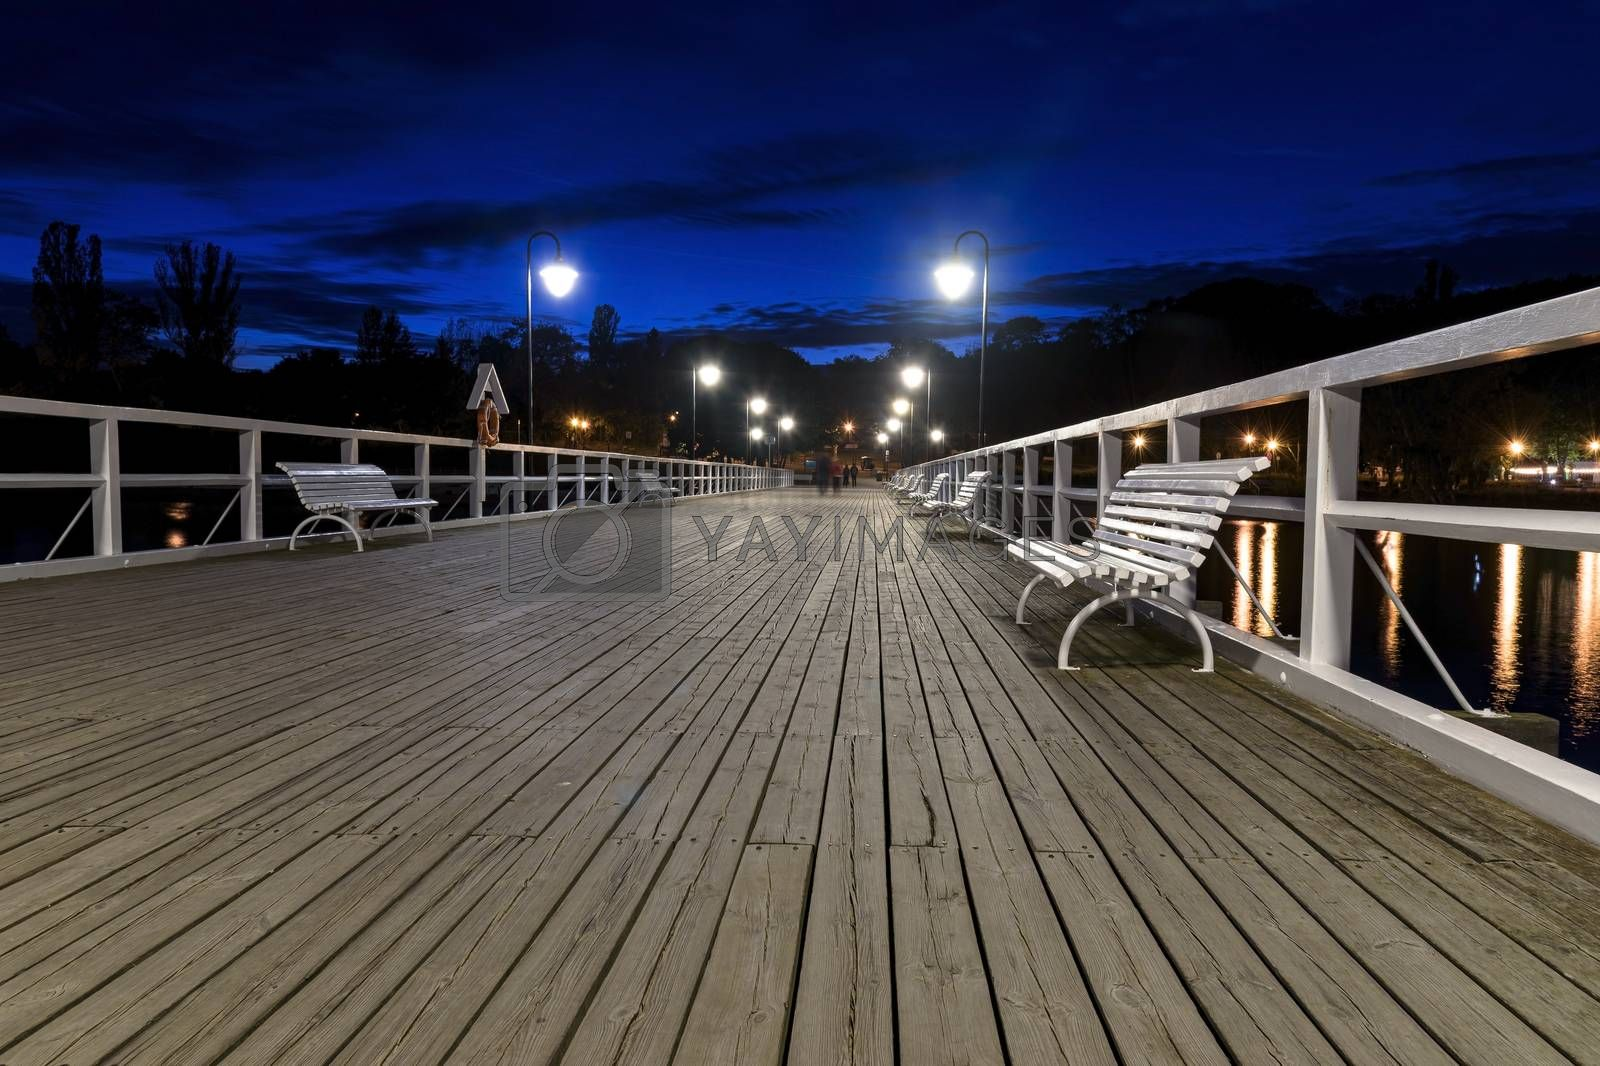 Night view of the pier in Gdynia Orlowo in Poland